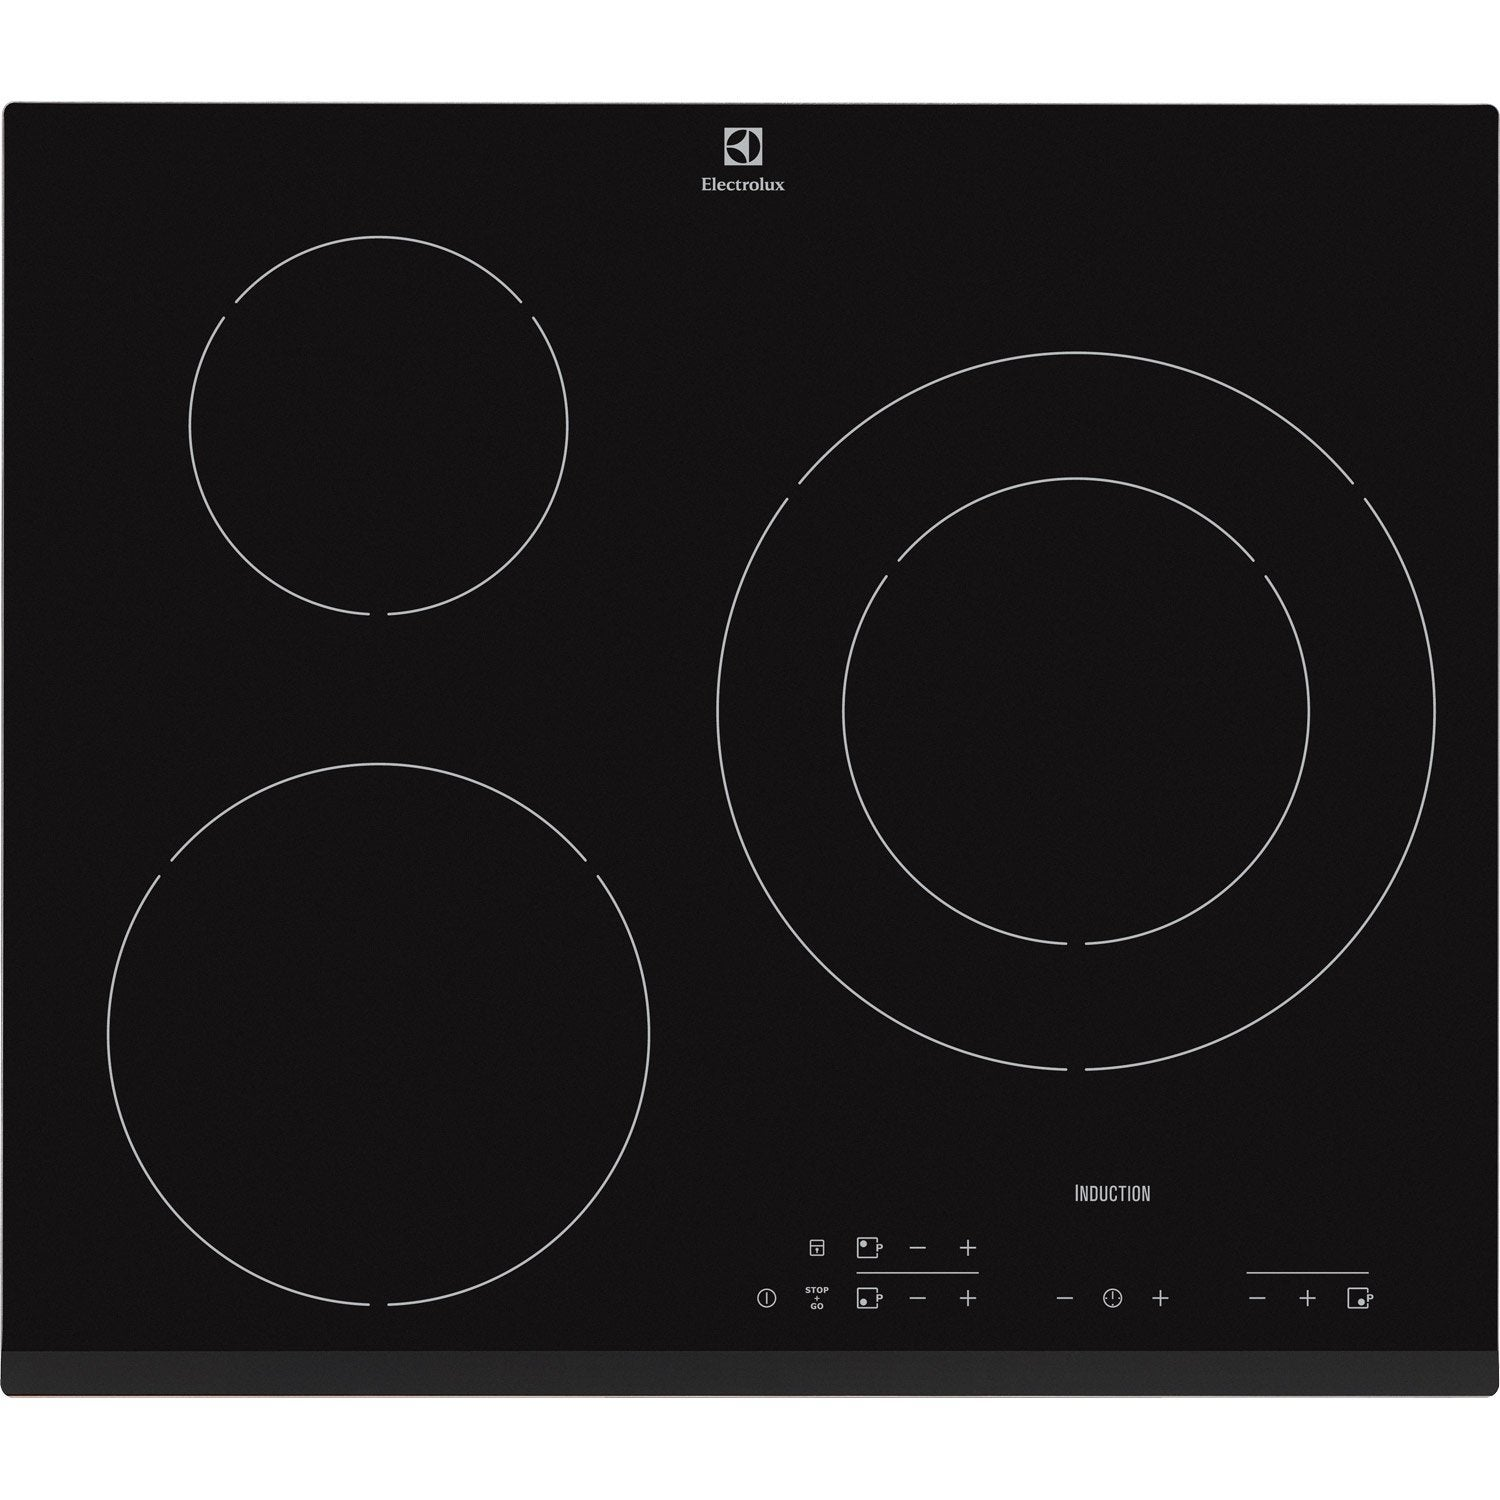 Plaque induction electrolux e6223hfk 3 foyers leroy merlin - Plaque induction grande largeur ...